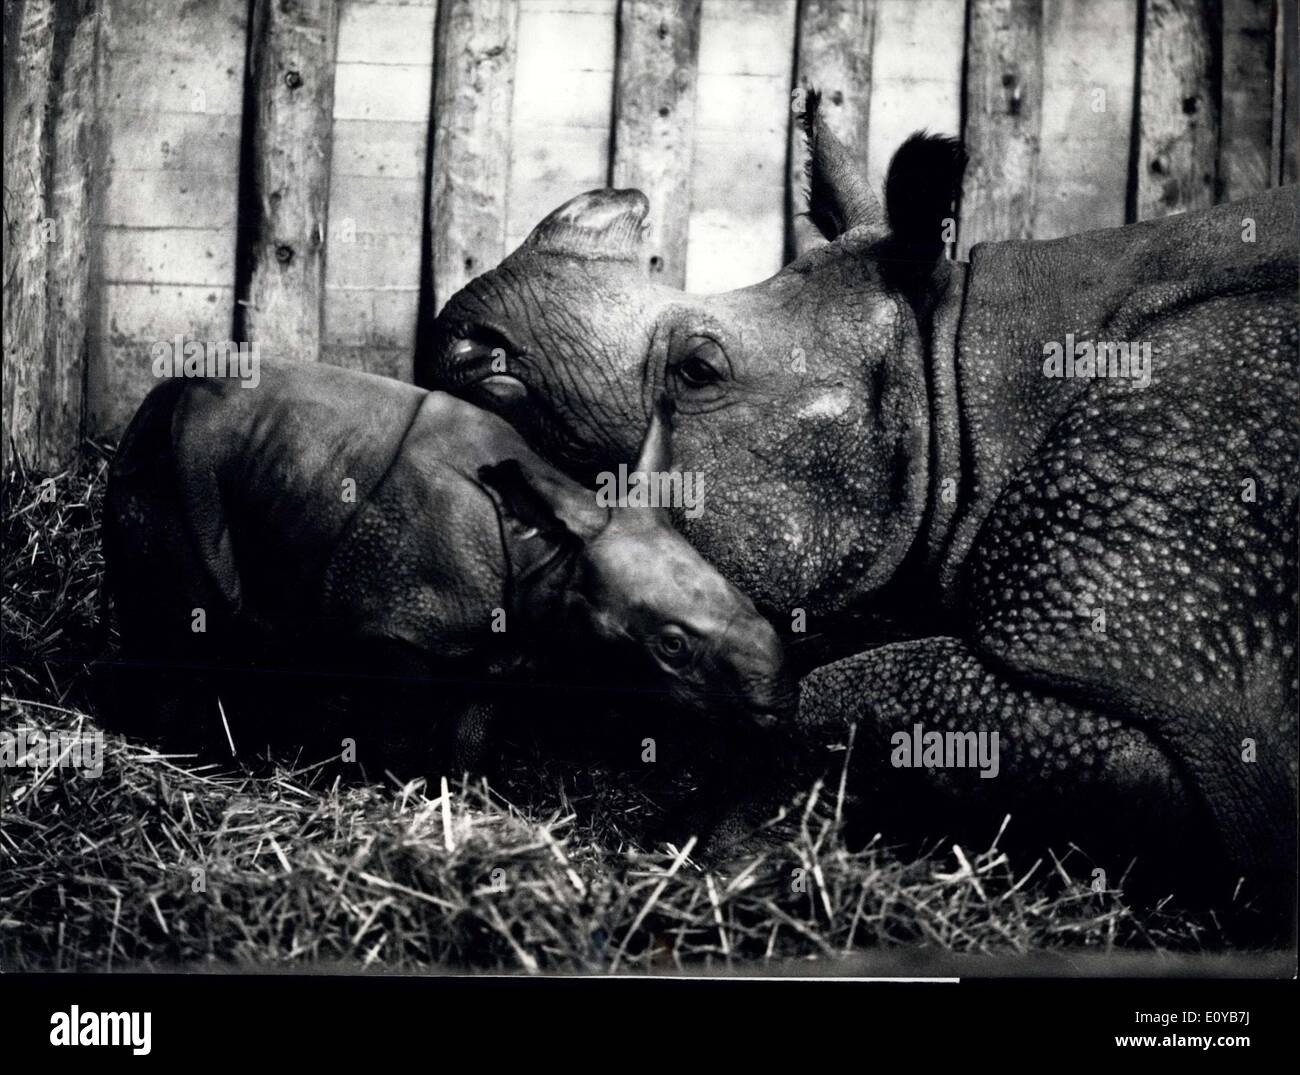 Oct. 10, 1969 - Breeding exploit in the Basle Zoo: An absolutely extraordinary breeding success in the zoological garden of Basle: The tenth armoured rhinocerus is born in this swiss captivity. The mother, ''Moola'' was 1,700 kg when she gave birth to the 76 kg baby on the 5th October.. This world famous breed gives its young rhinocerus to the zoo all over the world. Mother ''Moola'' with the only a few hours old female baby. - Stock Image